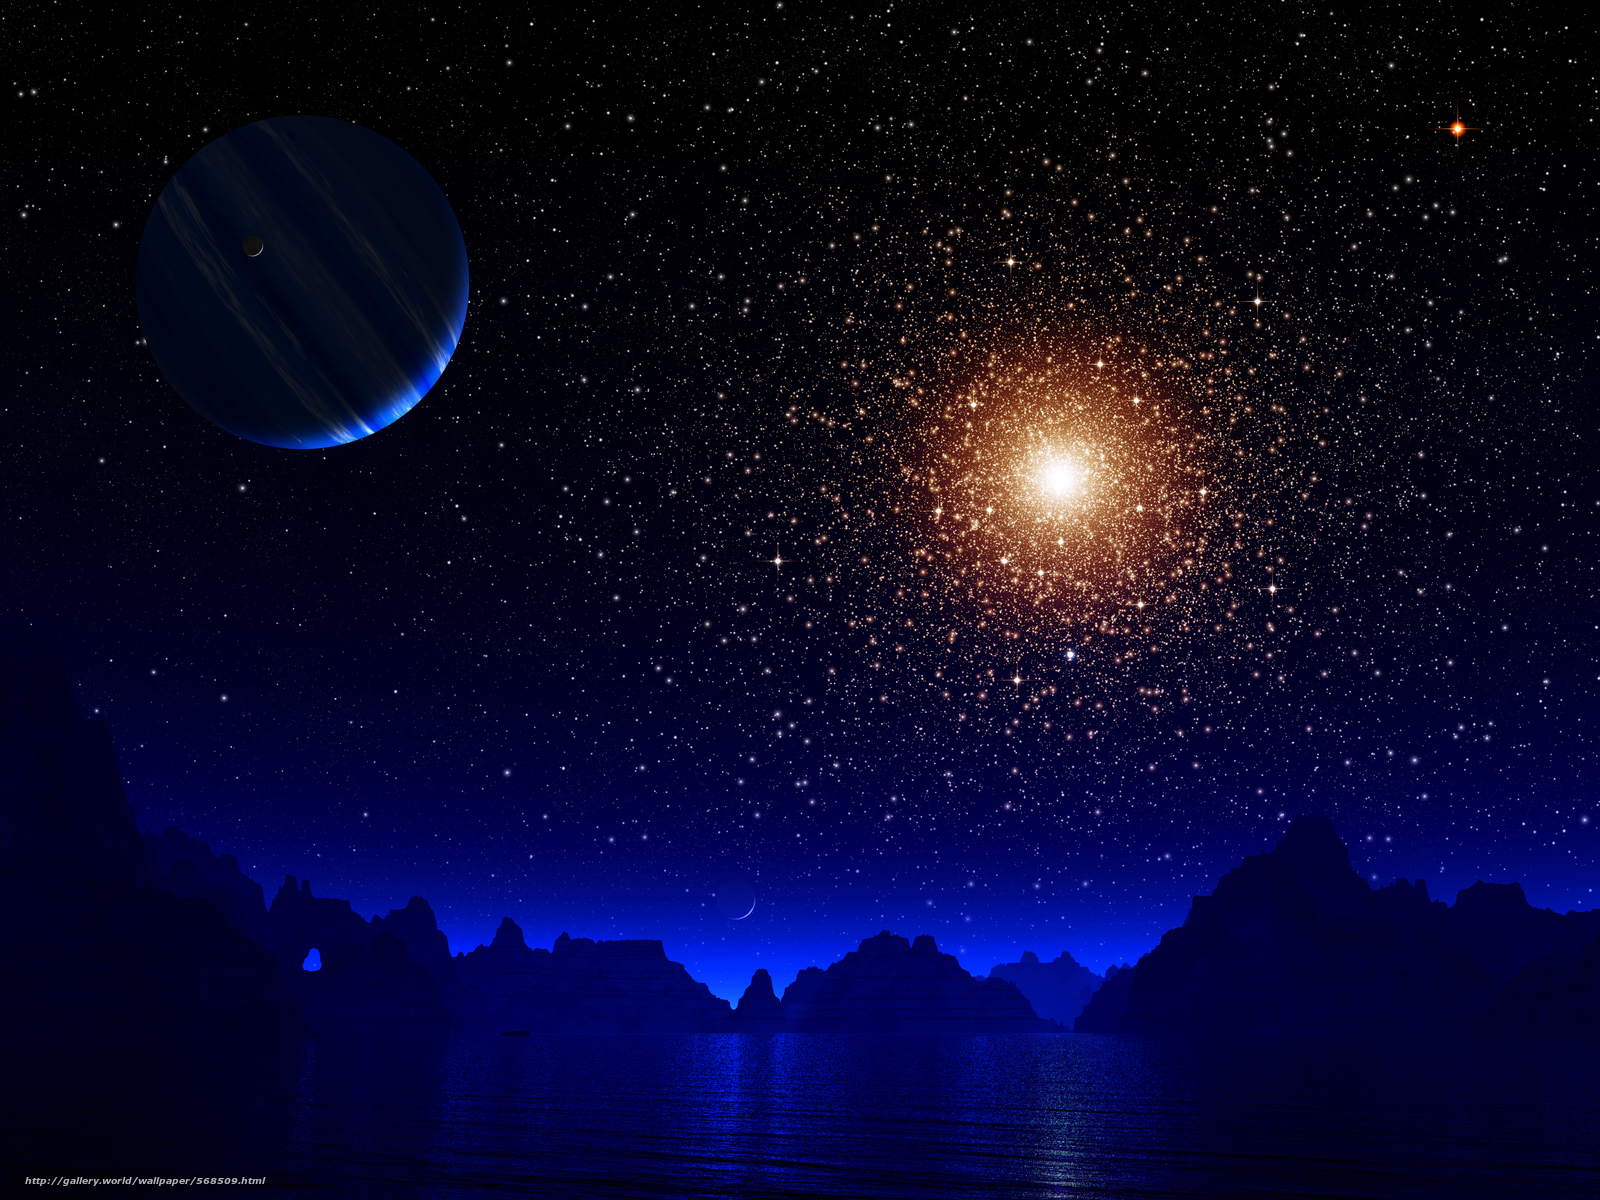 Download wallpaper space 3d art free desktop wallpaper in the resolution 4000x3000 picture - Wallpaper 3000 x 4000 ...